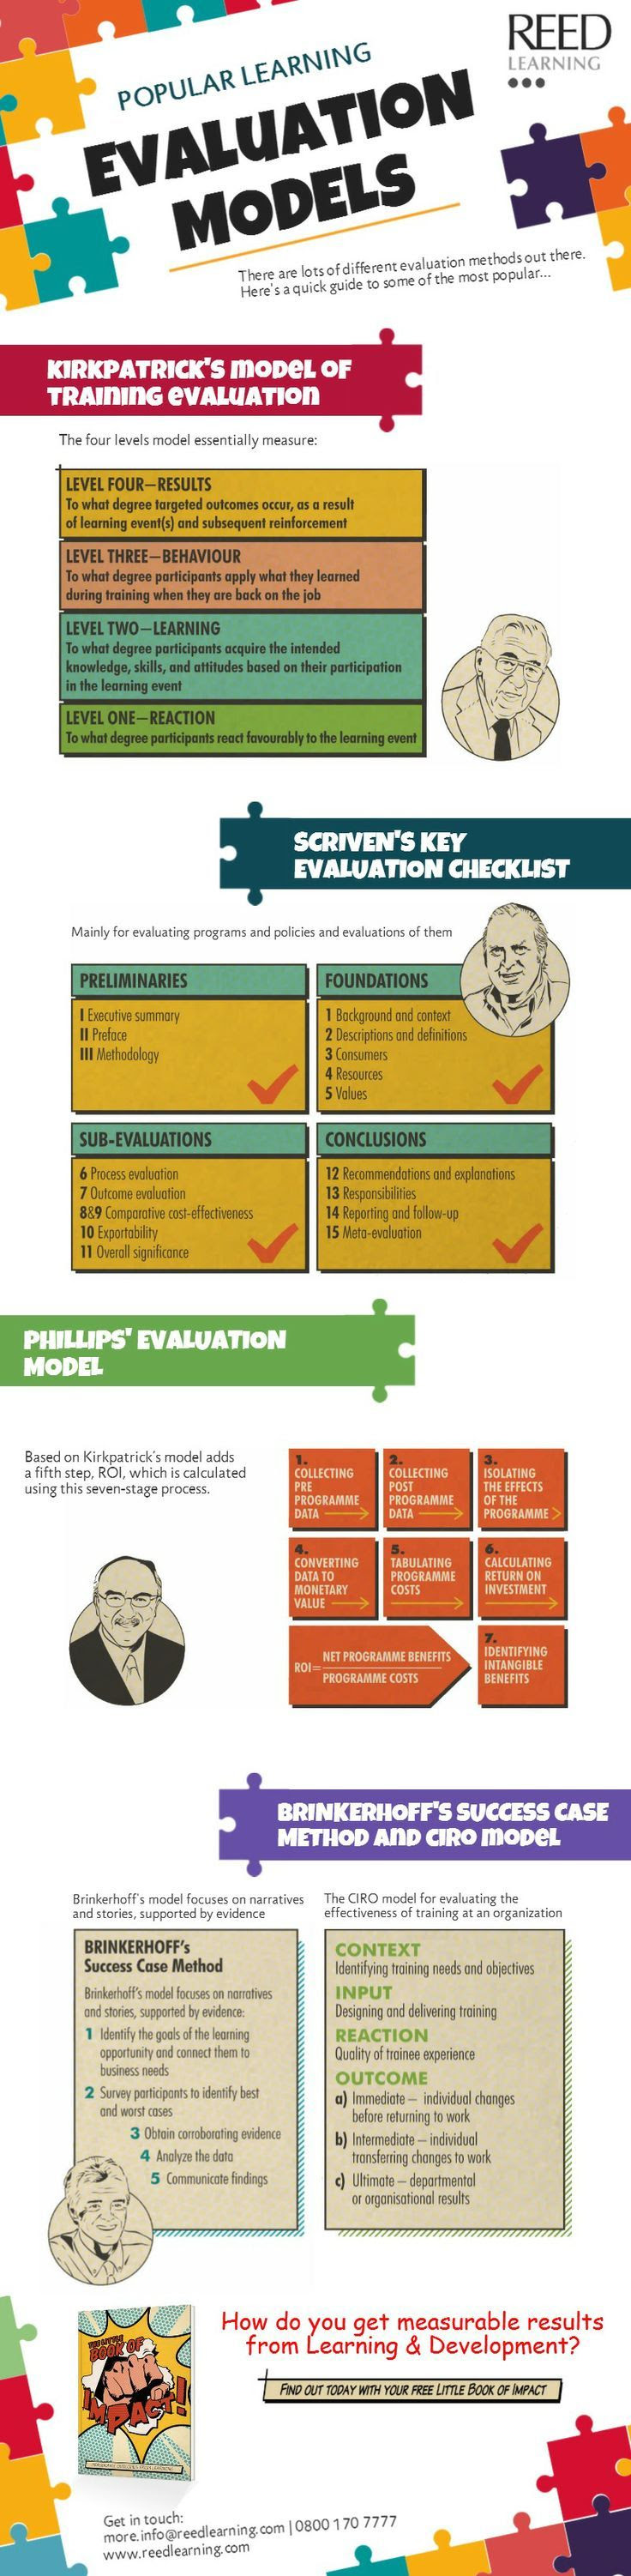 Popular learning evaluation models